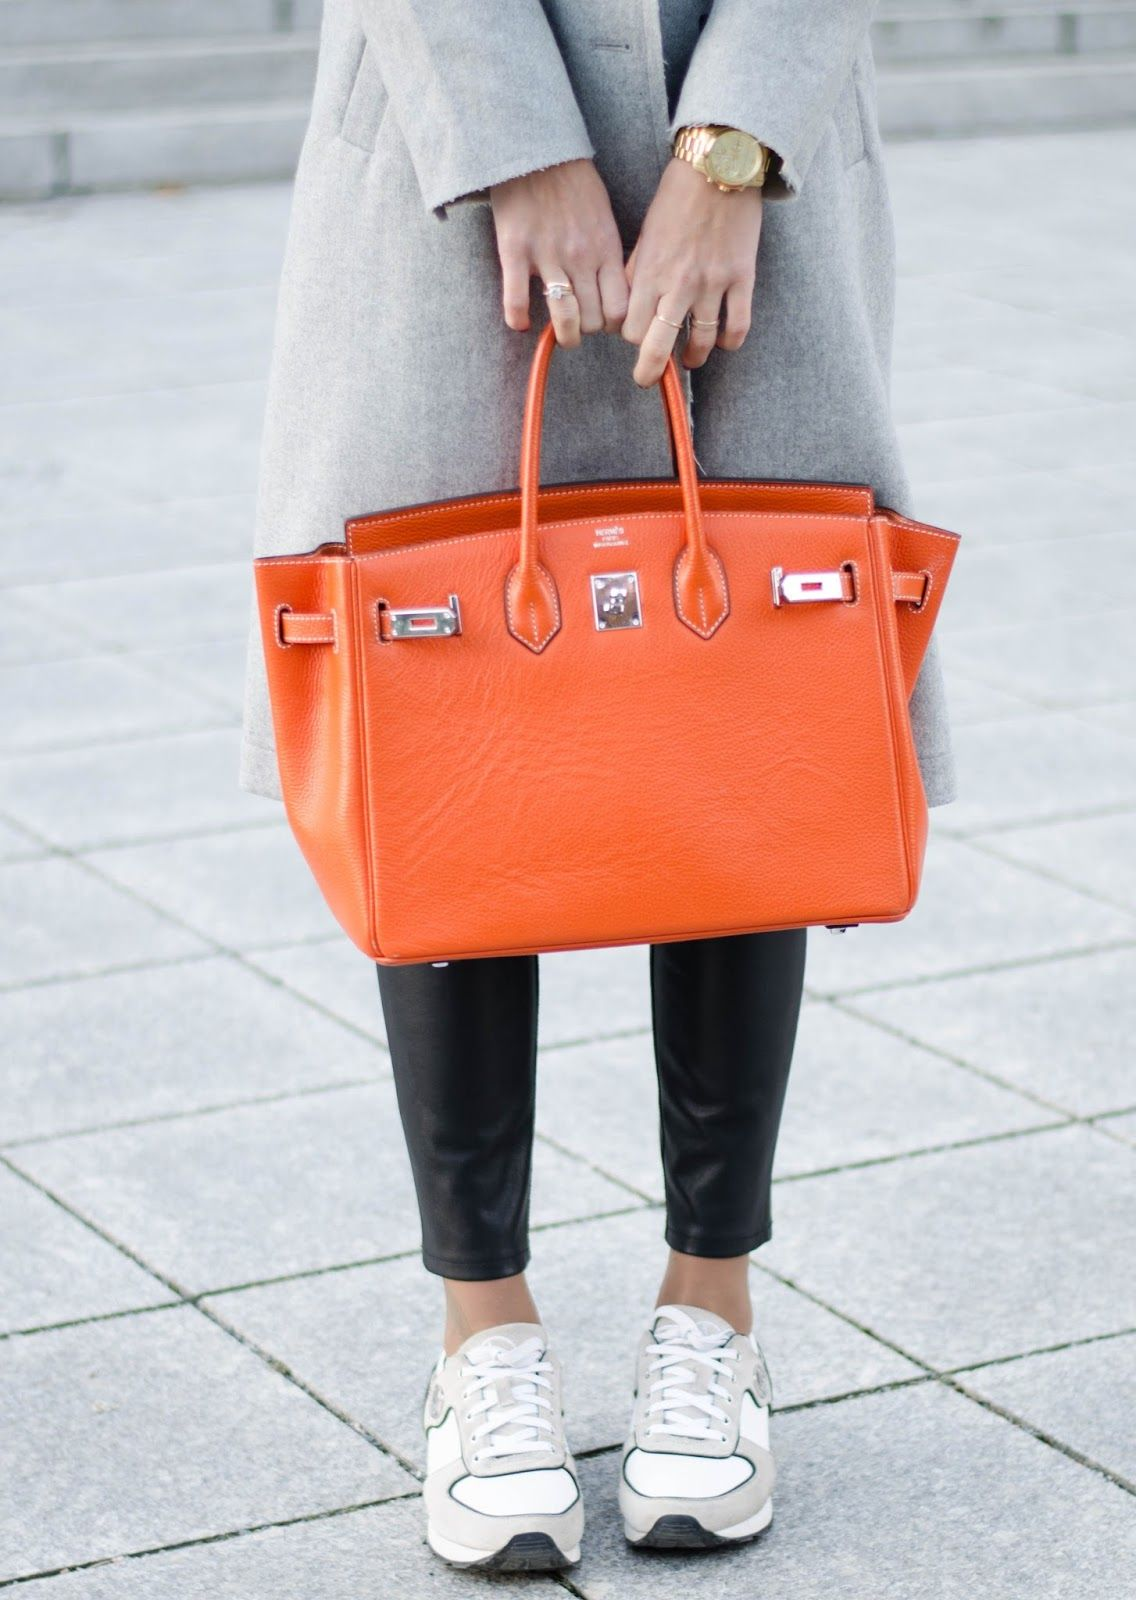 4a1d73e590 kristjaana mere orange hermes birkin bag leather pants white sneakers  winter style